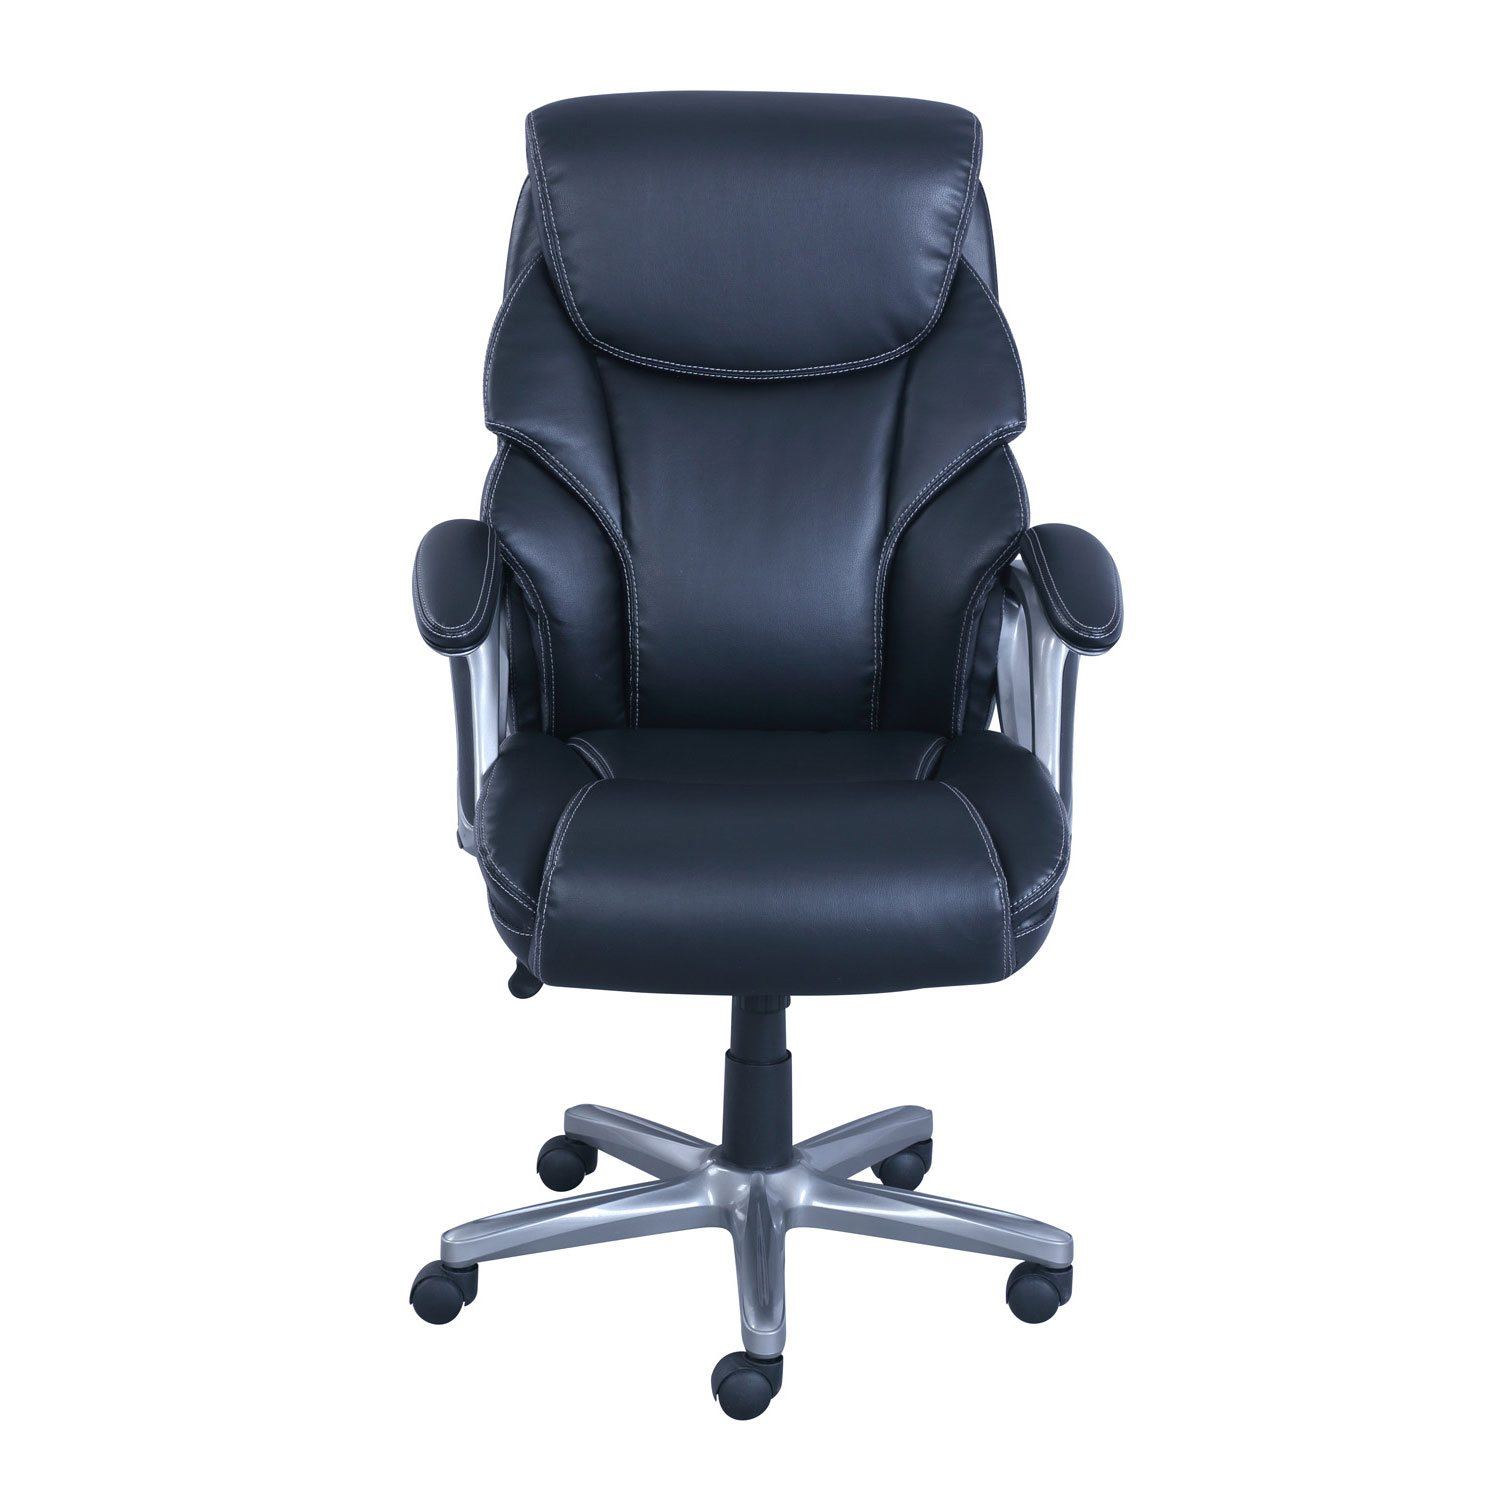 Serta Manager s fice Chair Black Supports up to 250 lbs